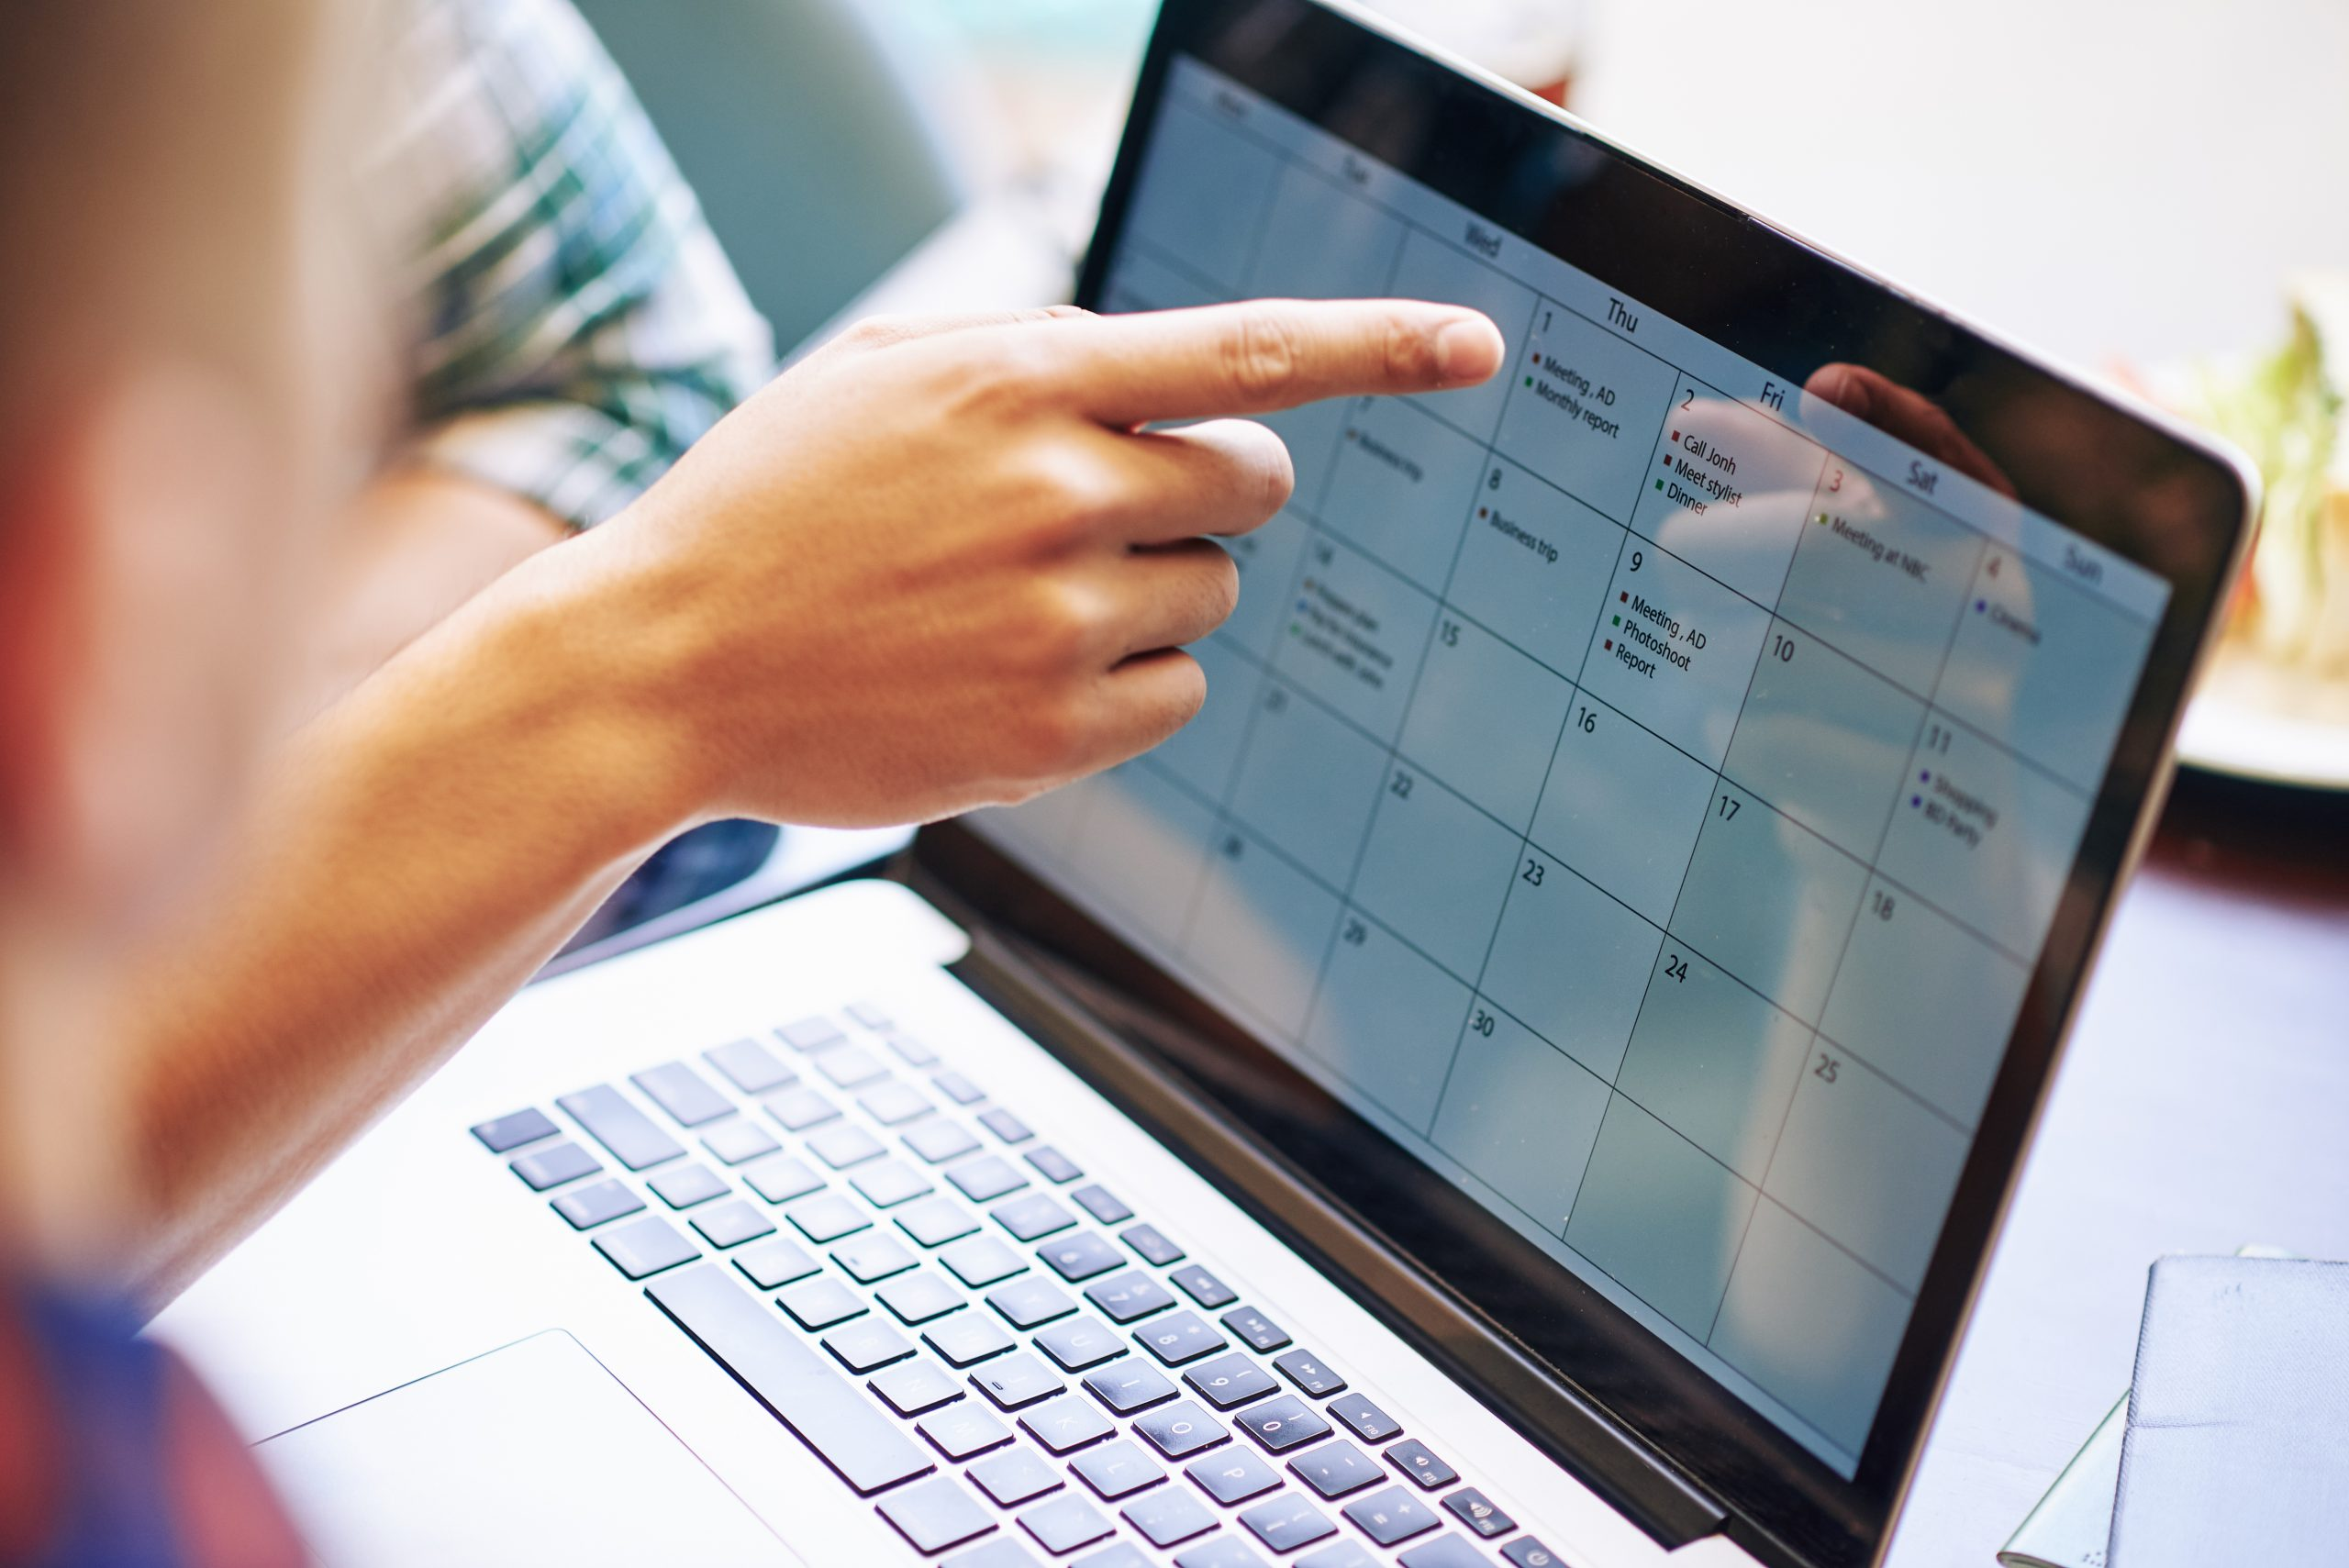 How to Create An Effective On-Call Schedule